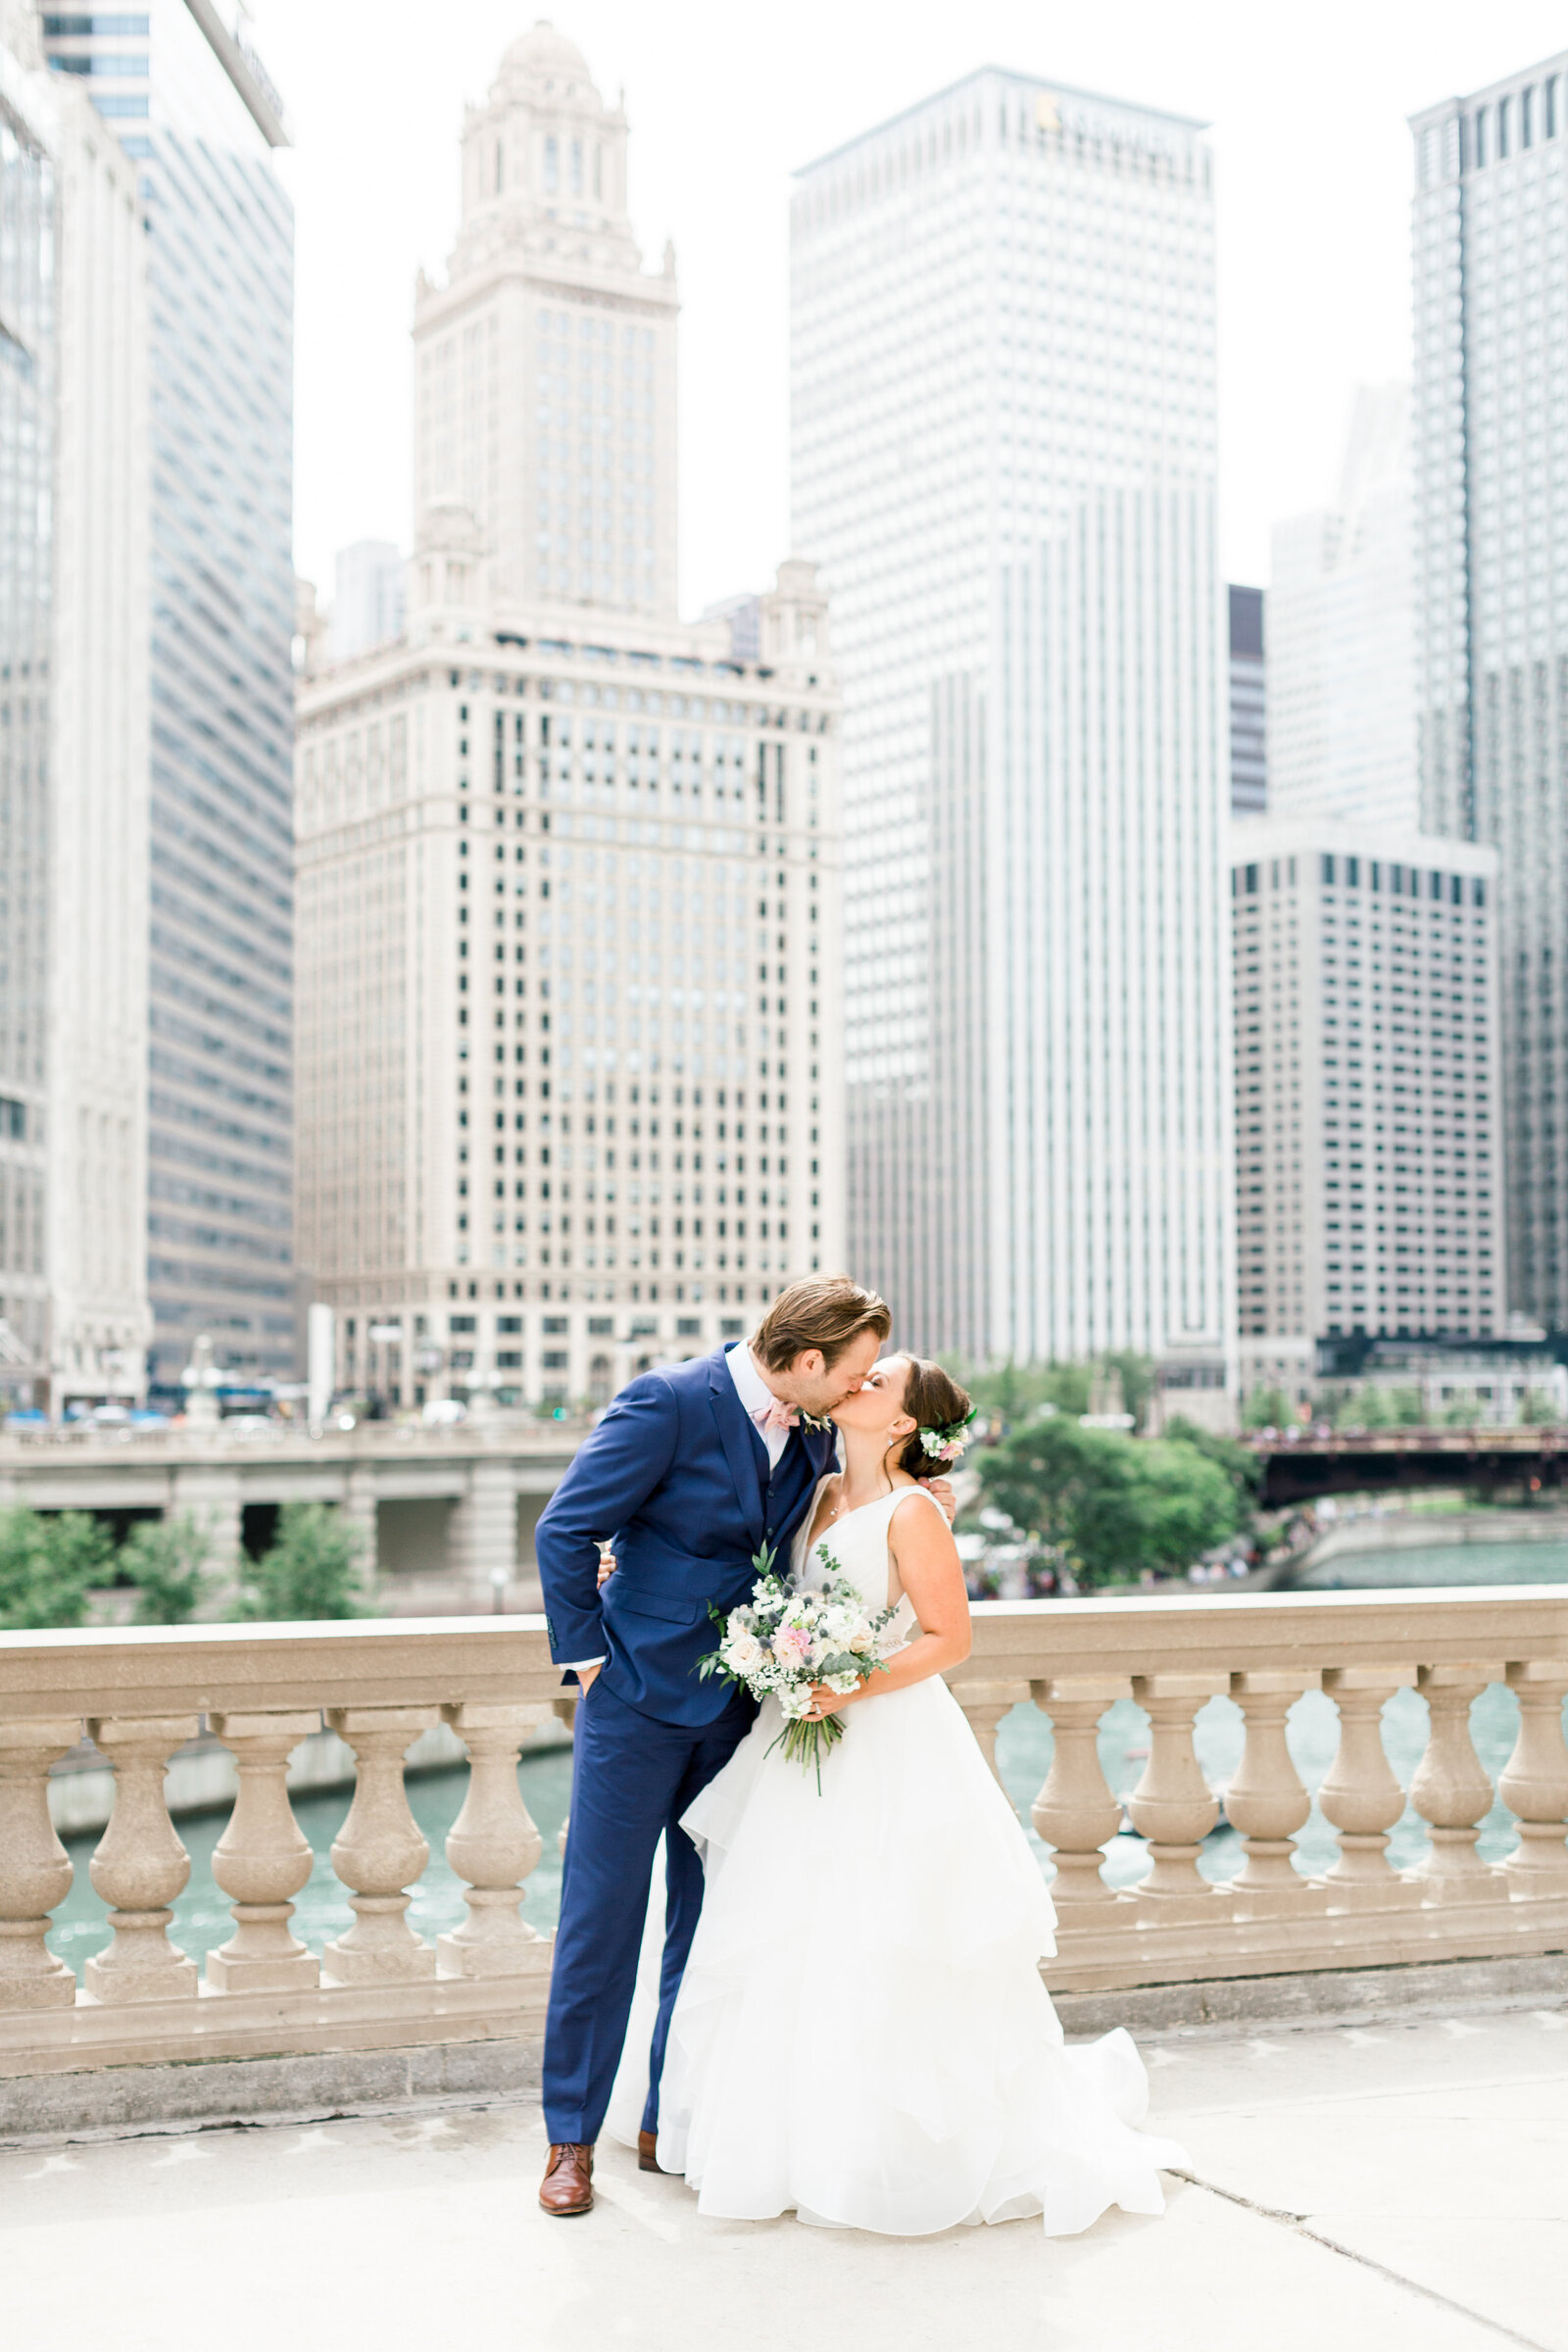 lindsey-taylor-photography-chicago-wedding-photographer253